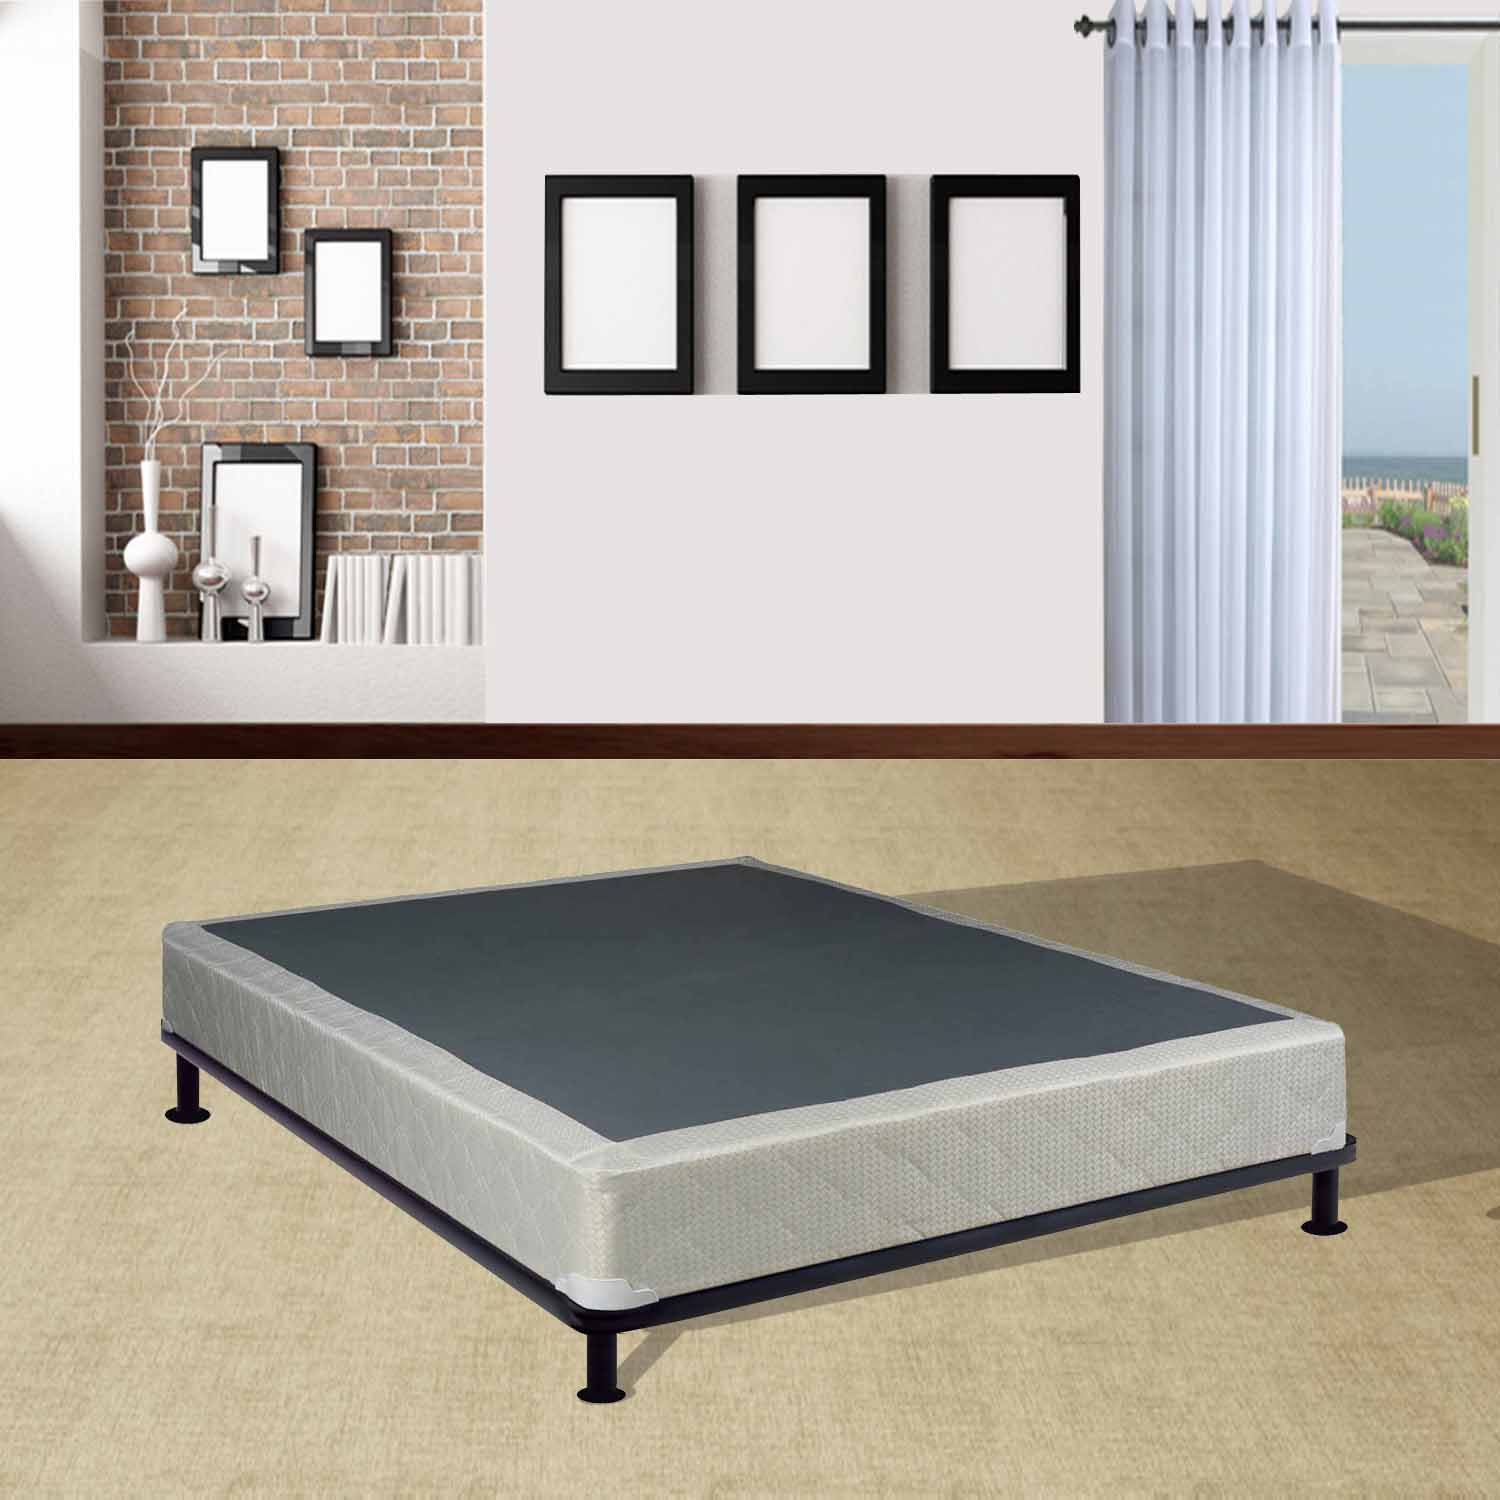 "WAYTON, Fully Assembled Long Lasting 8-Inch Box Spring for Mattress, Twin Size 74"" x 38"""